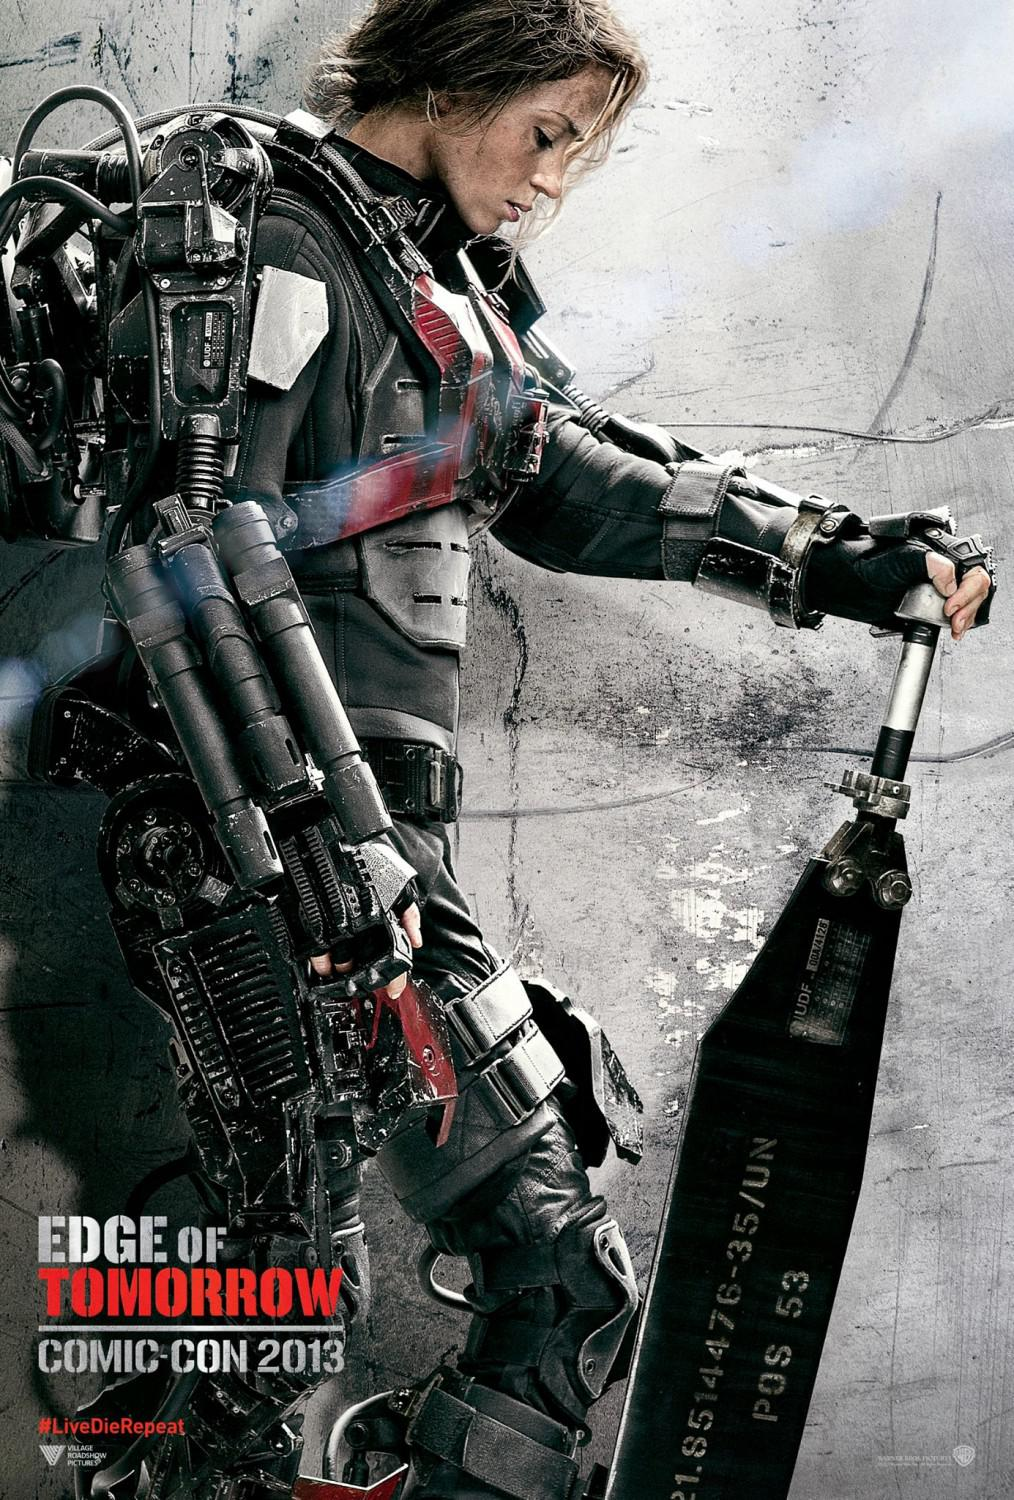 Edge of Tomorrow - Senza Domani - film poster - esoscheletro - Emily Blunt